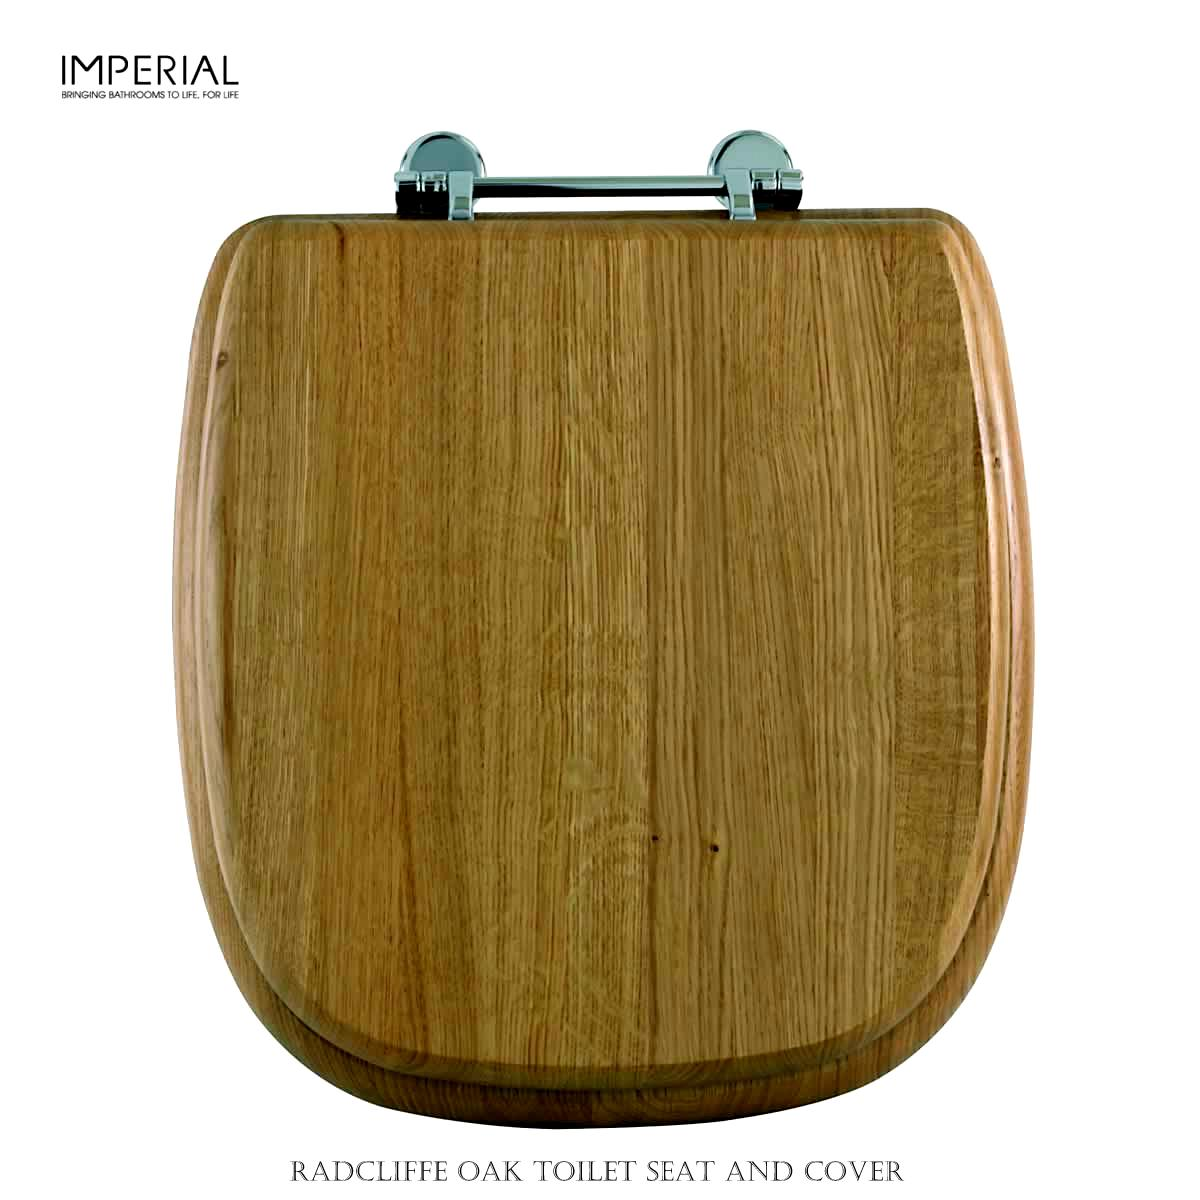 solid wood soft close toilet seat. Available Variations Of This Product Include Xw50000110 Imperial Radcliffe Solid  Wood Toilet Seat Oak Soft Close E Hinges